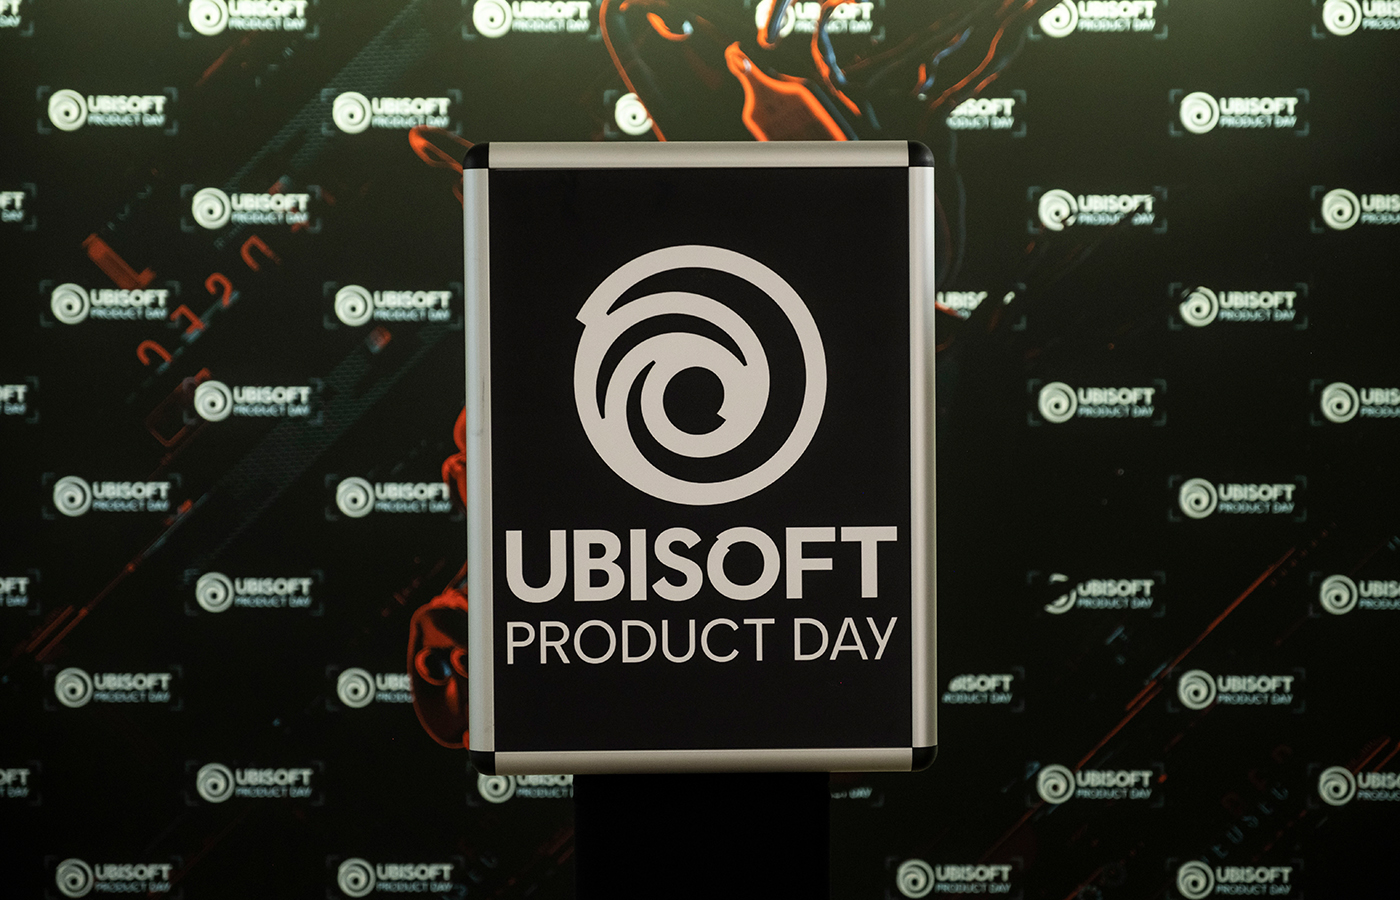 Ubisoft Product Day 2019 – Isarpost 2019